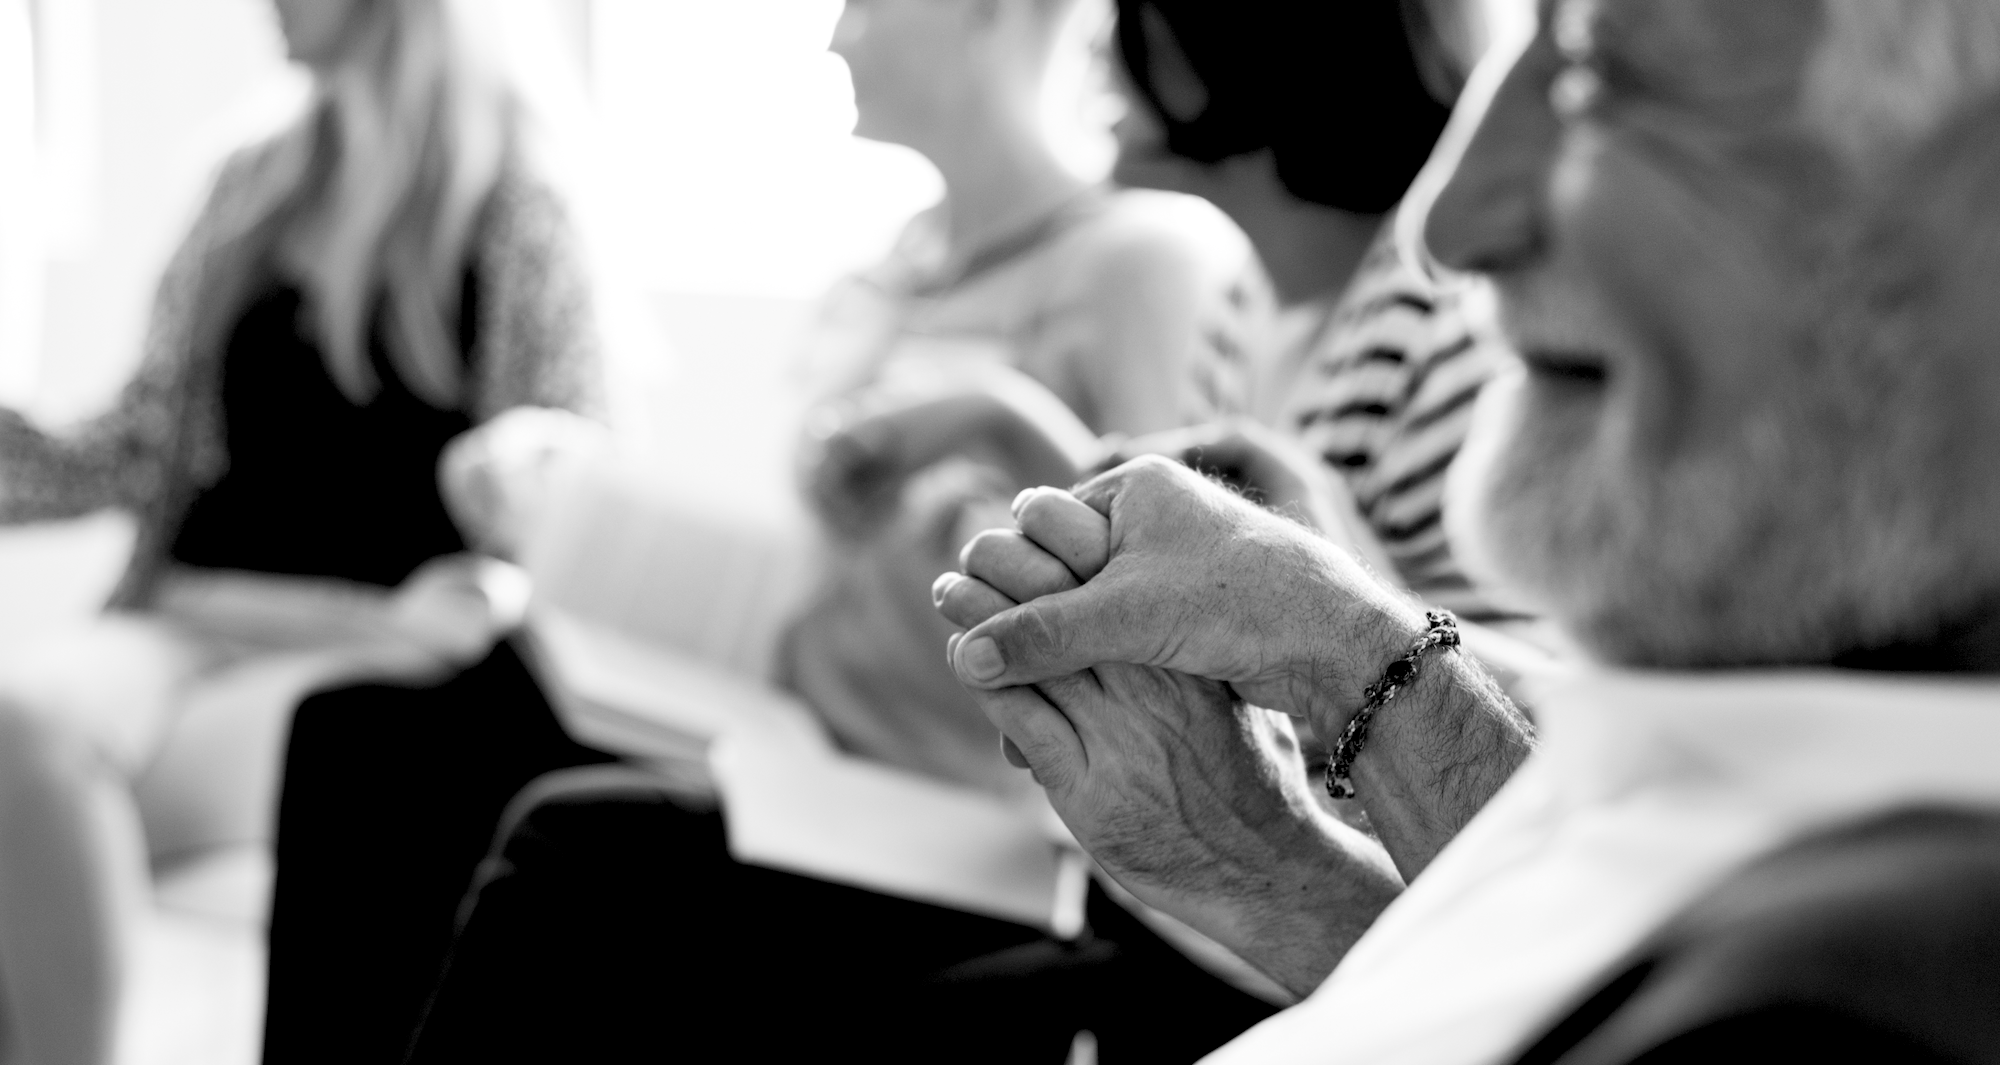 Two older people hold hands in black and white image.